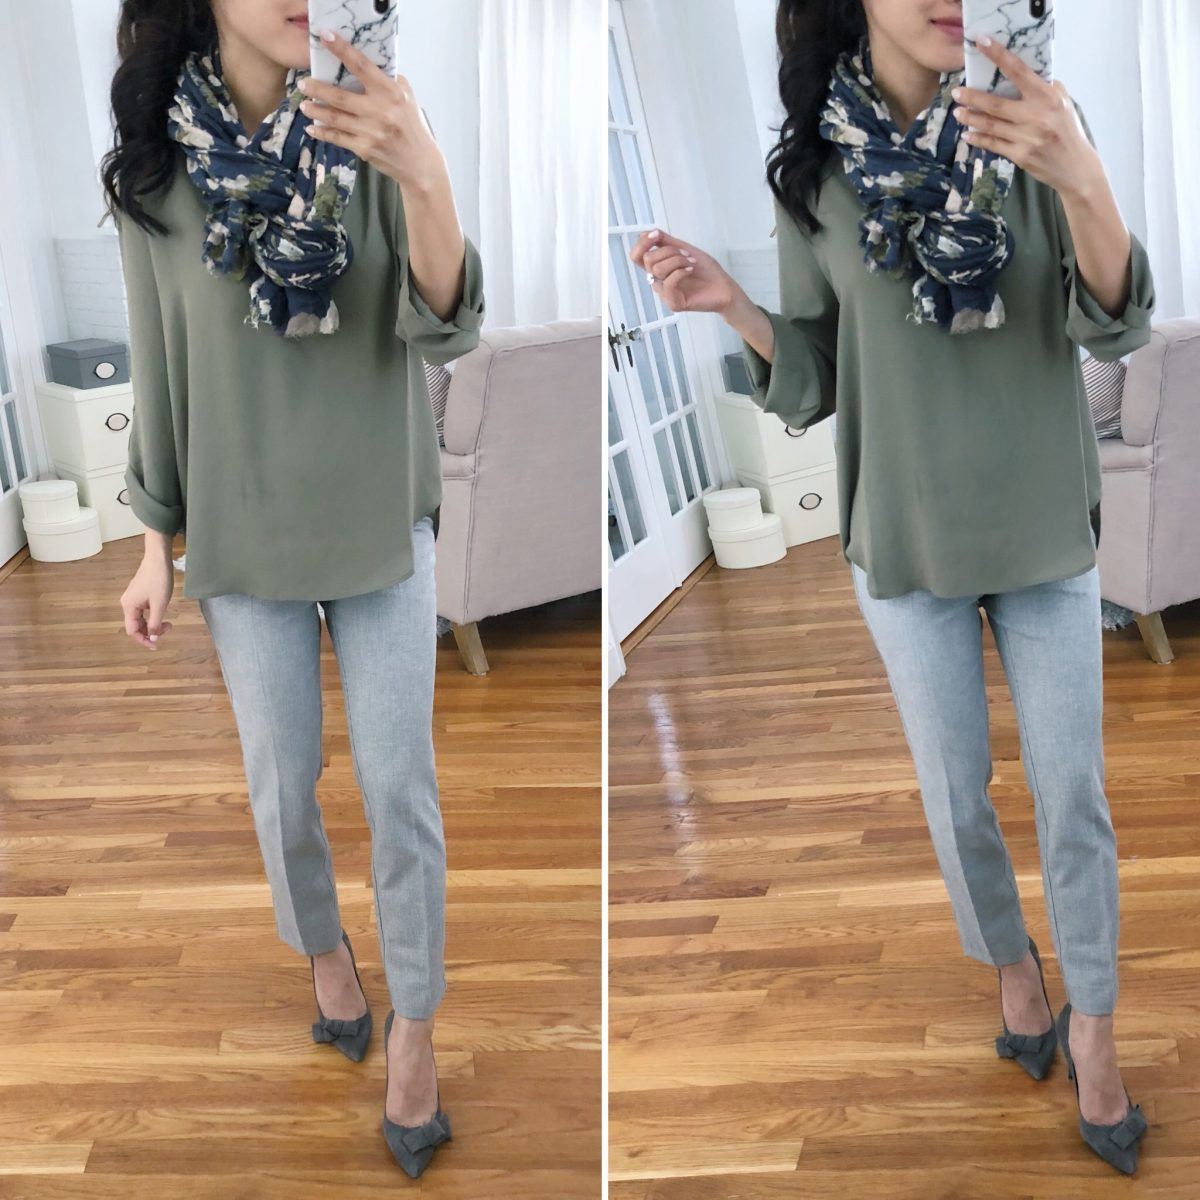 Work outfit ideas that camouflage the belly